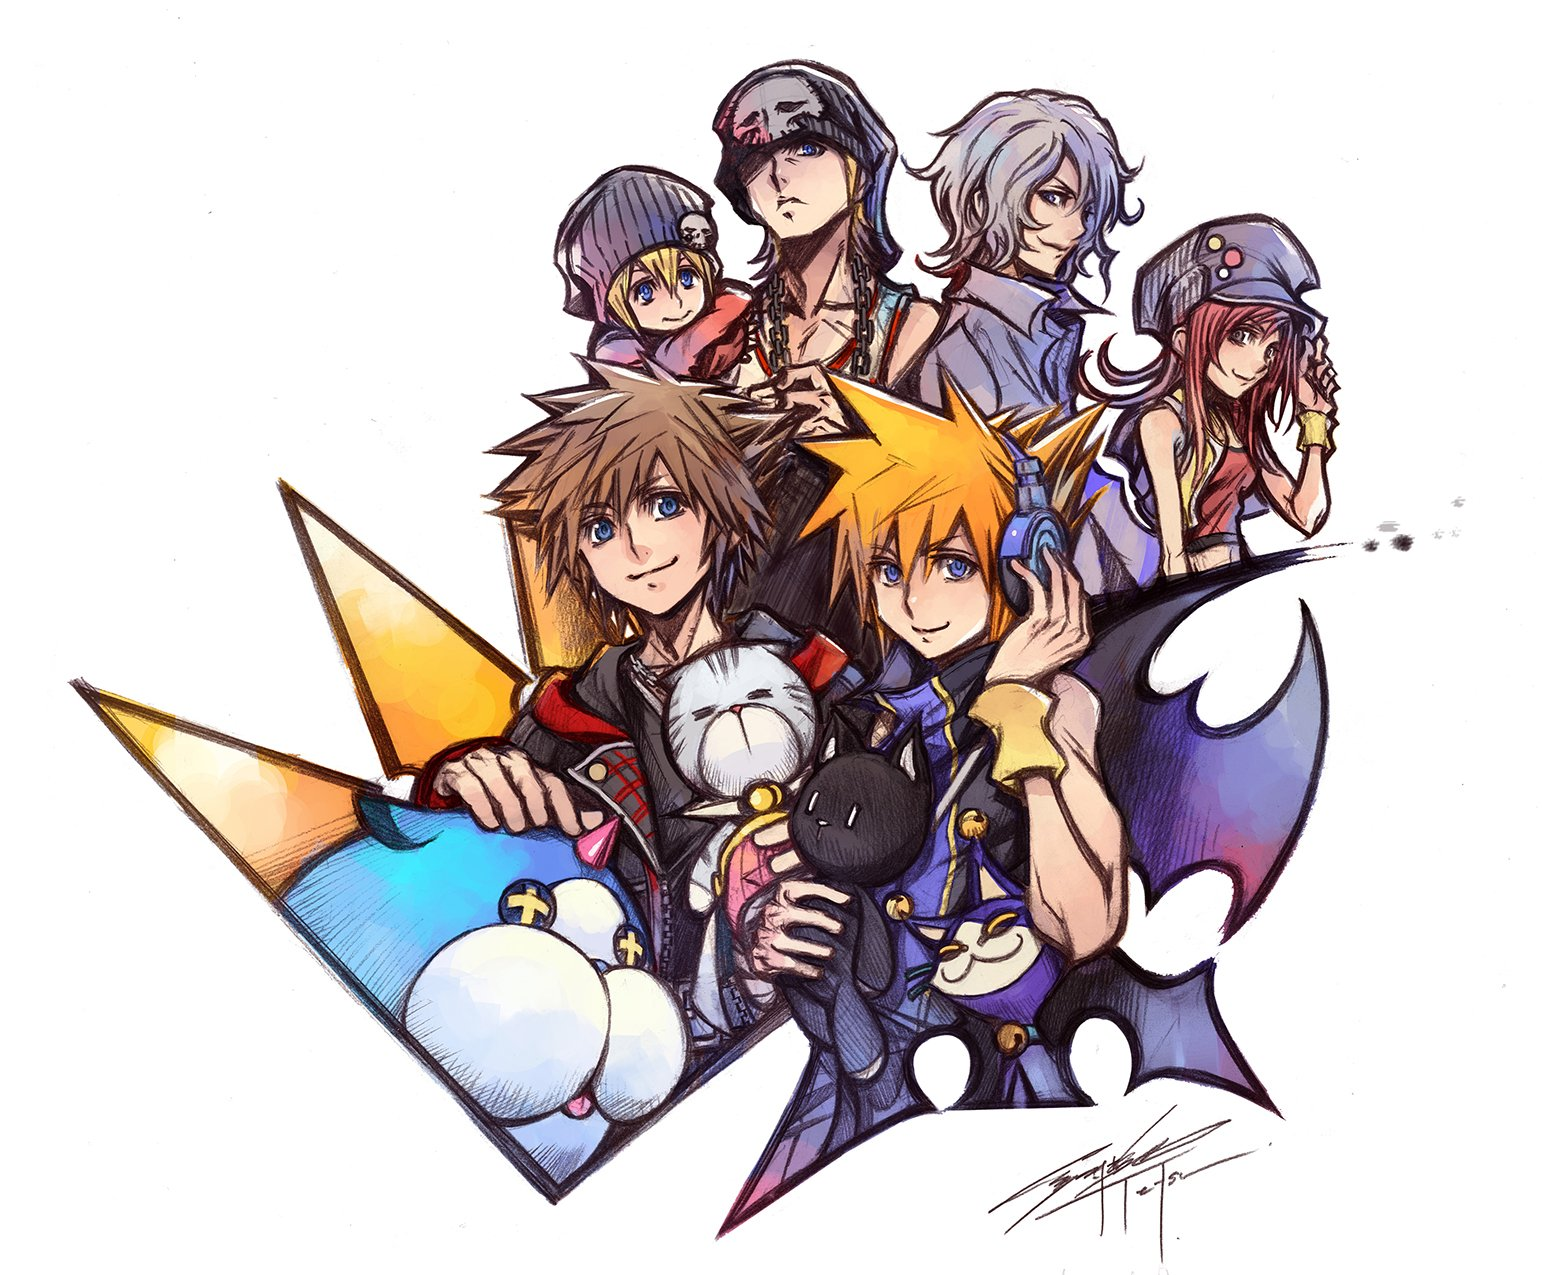 Nomura Shares Special Illustration To Celebrate The Release Of Twewy